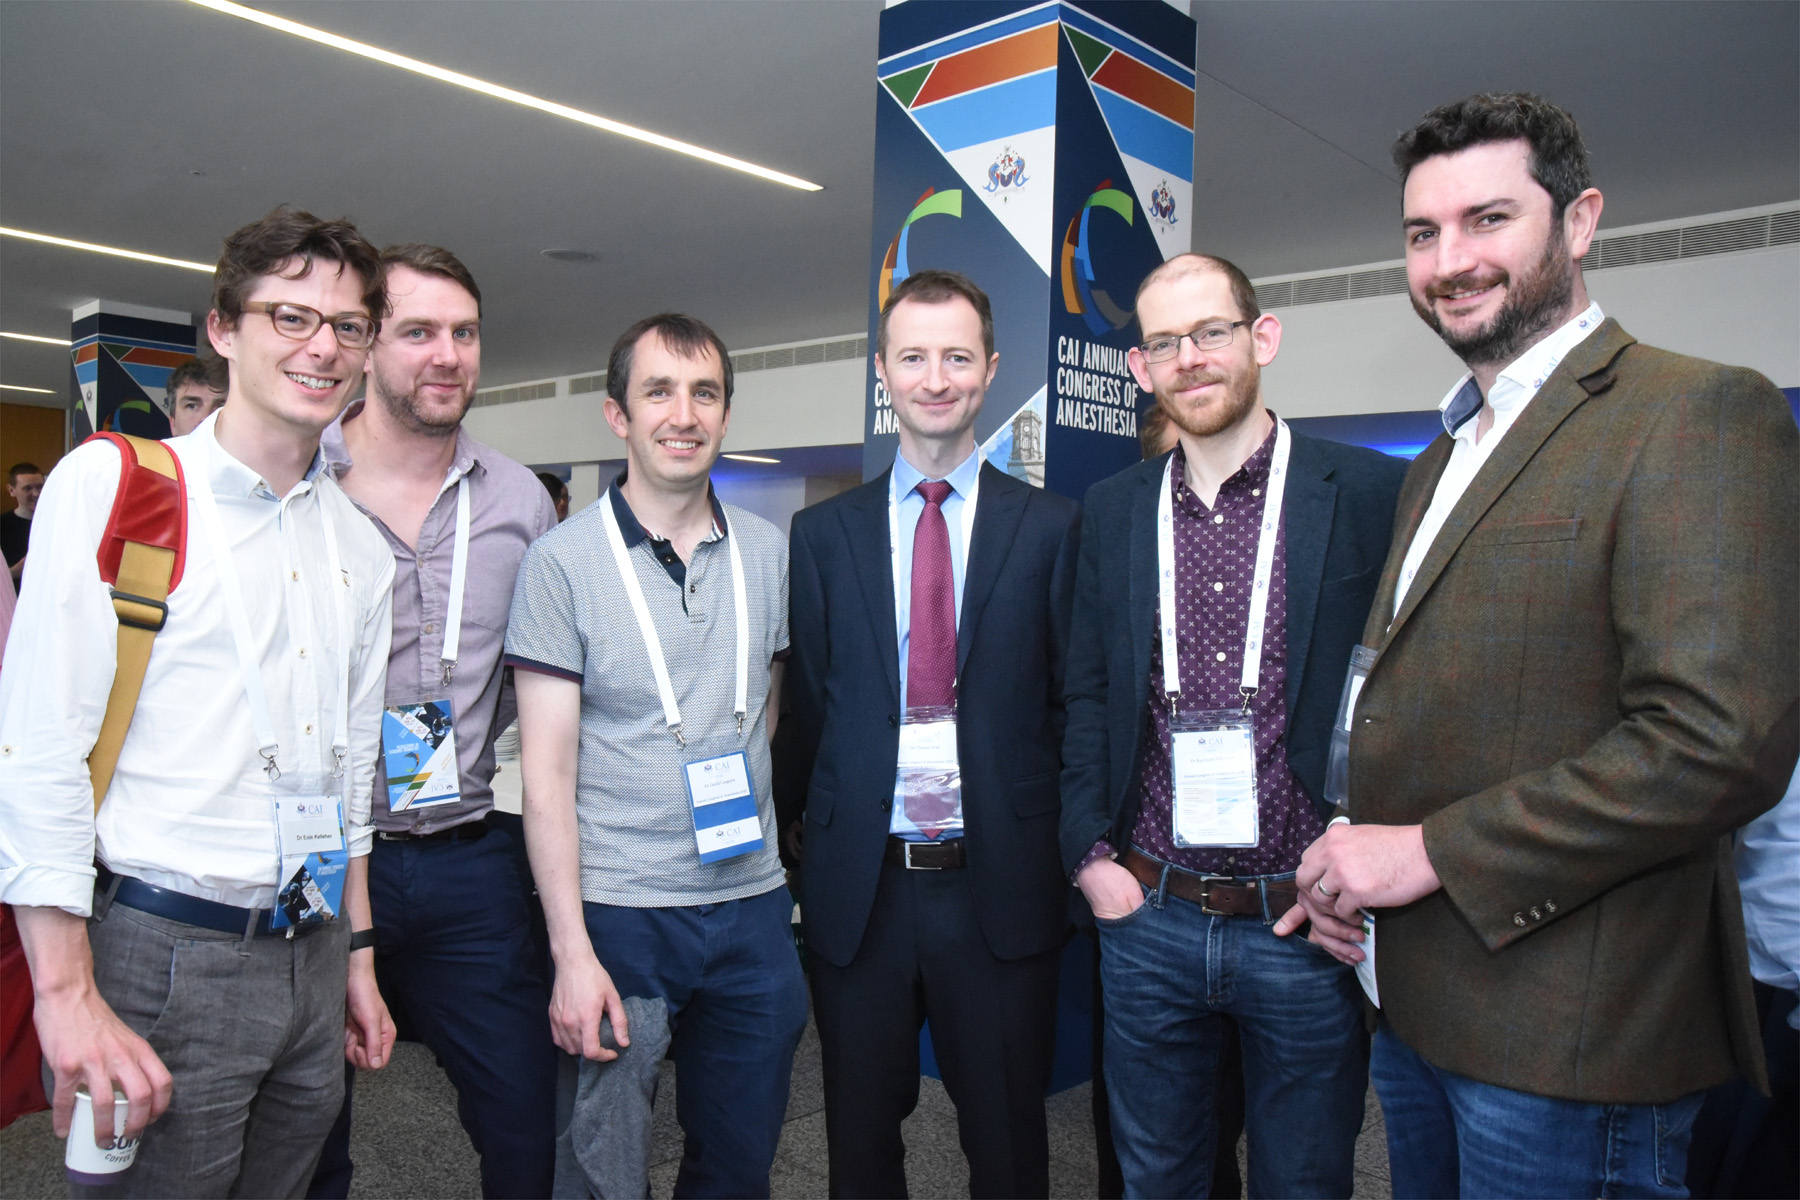 College of Anaesthetists of Ireland Annual Congress 2018 - Dr Eoin Kelleher, Dr James Freeman, Dr David Cosgrave, Dr Thomas Wall, Dr Raymund O'Connor and Dr Enda Shanahan